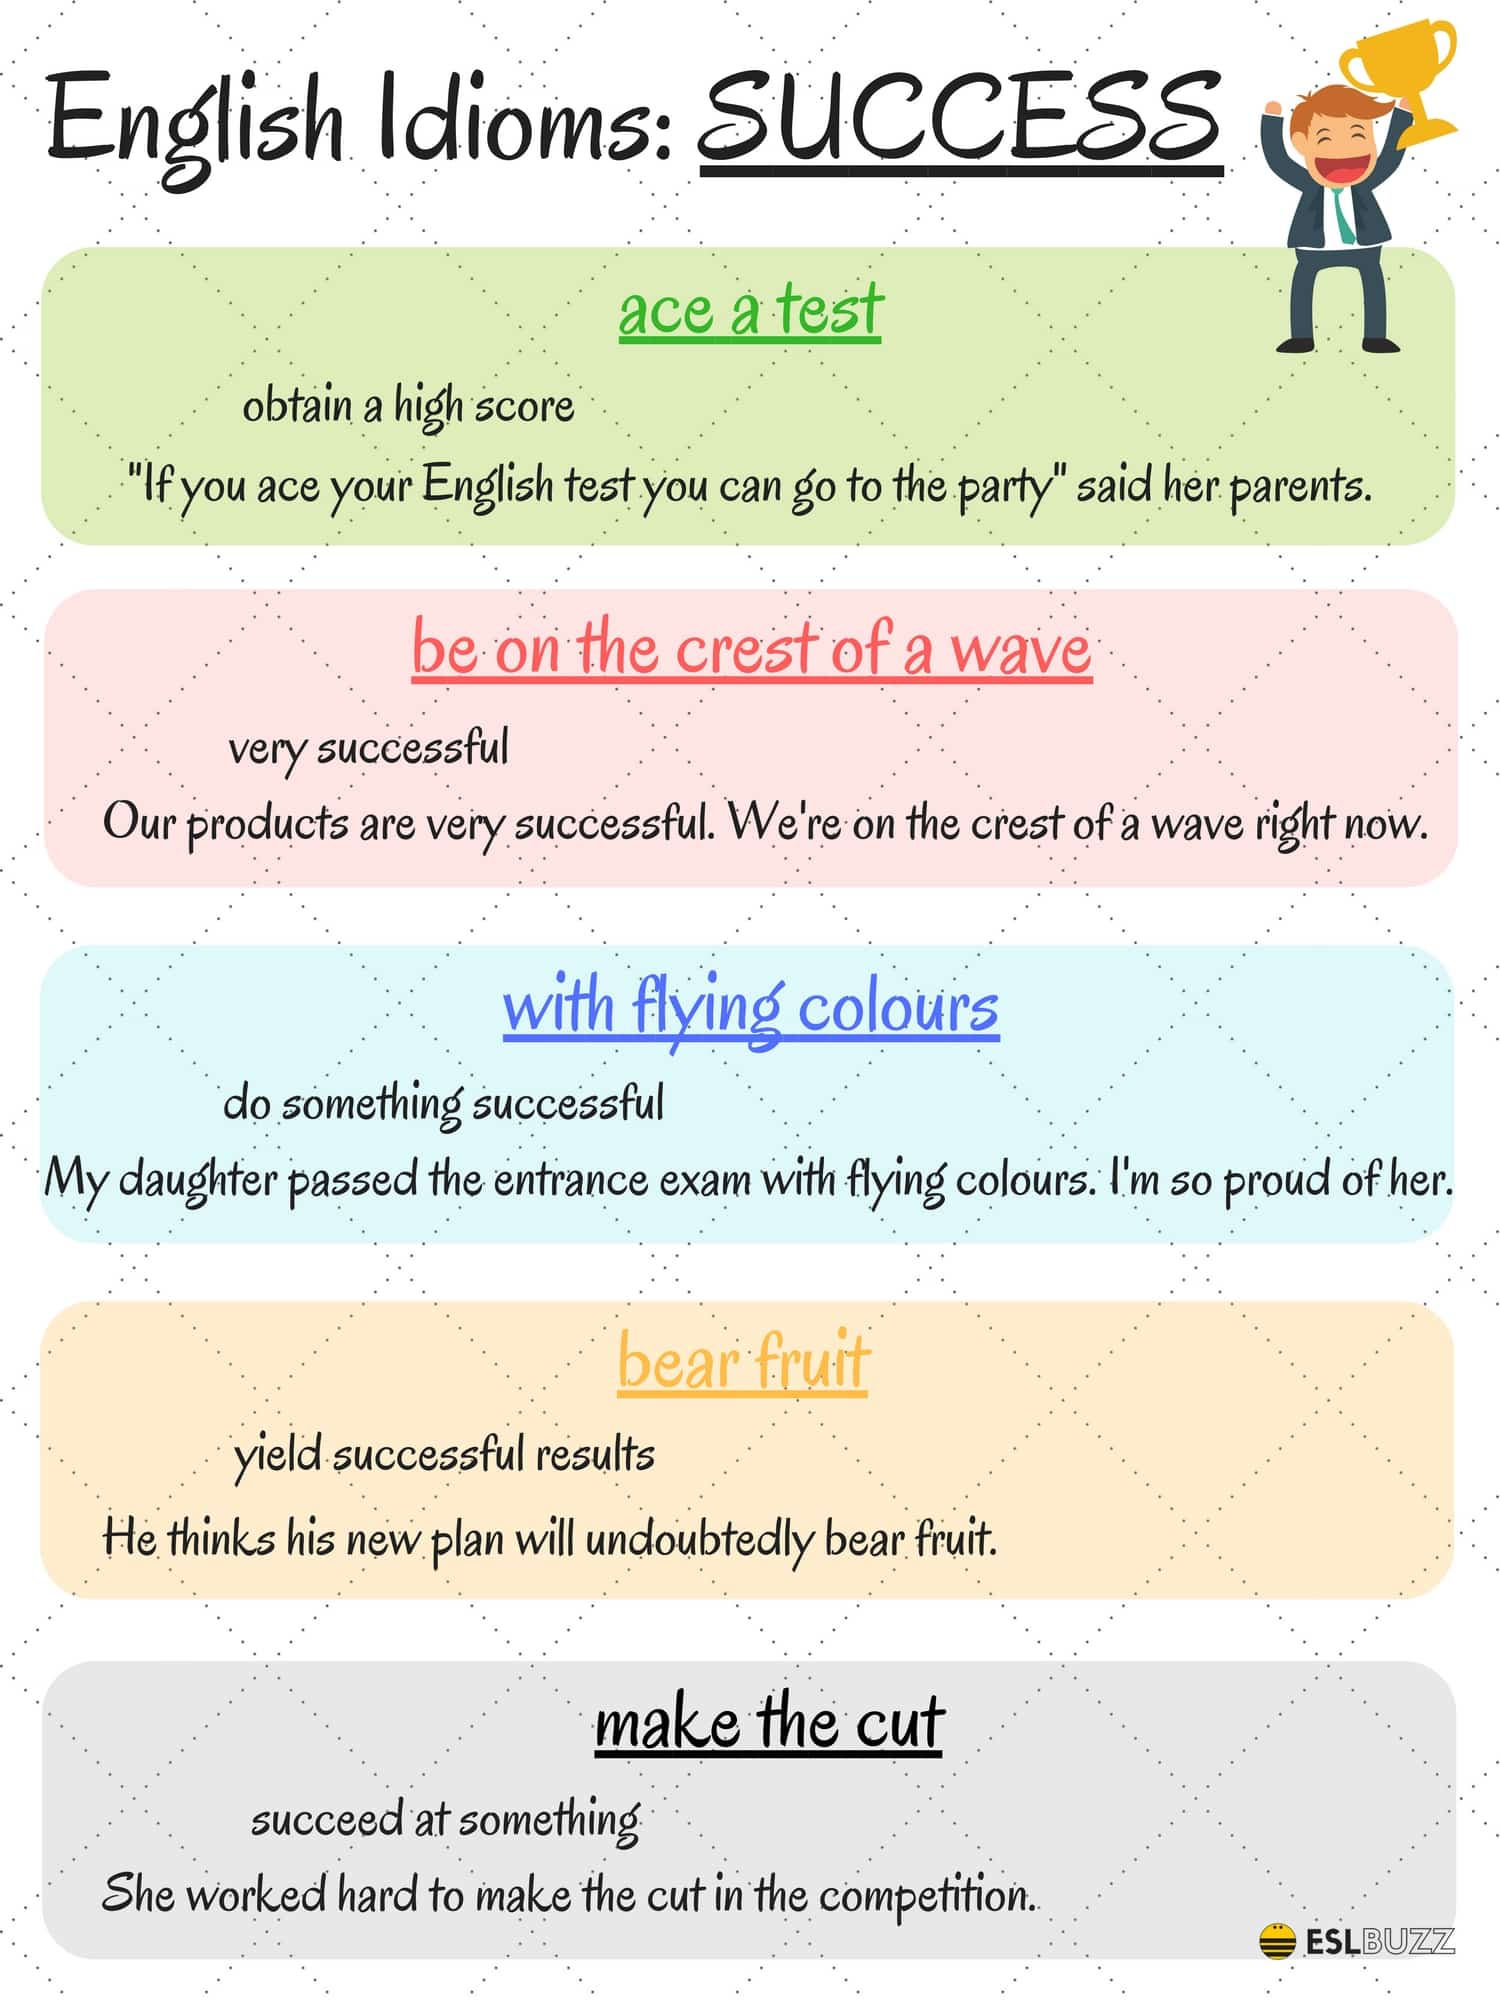 20+ English Idioms Related to SUCCESS 14